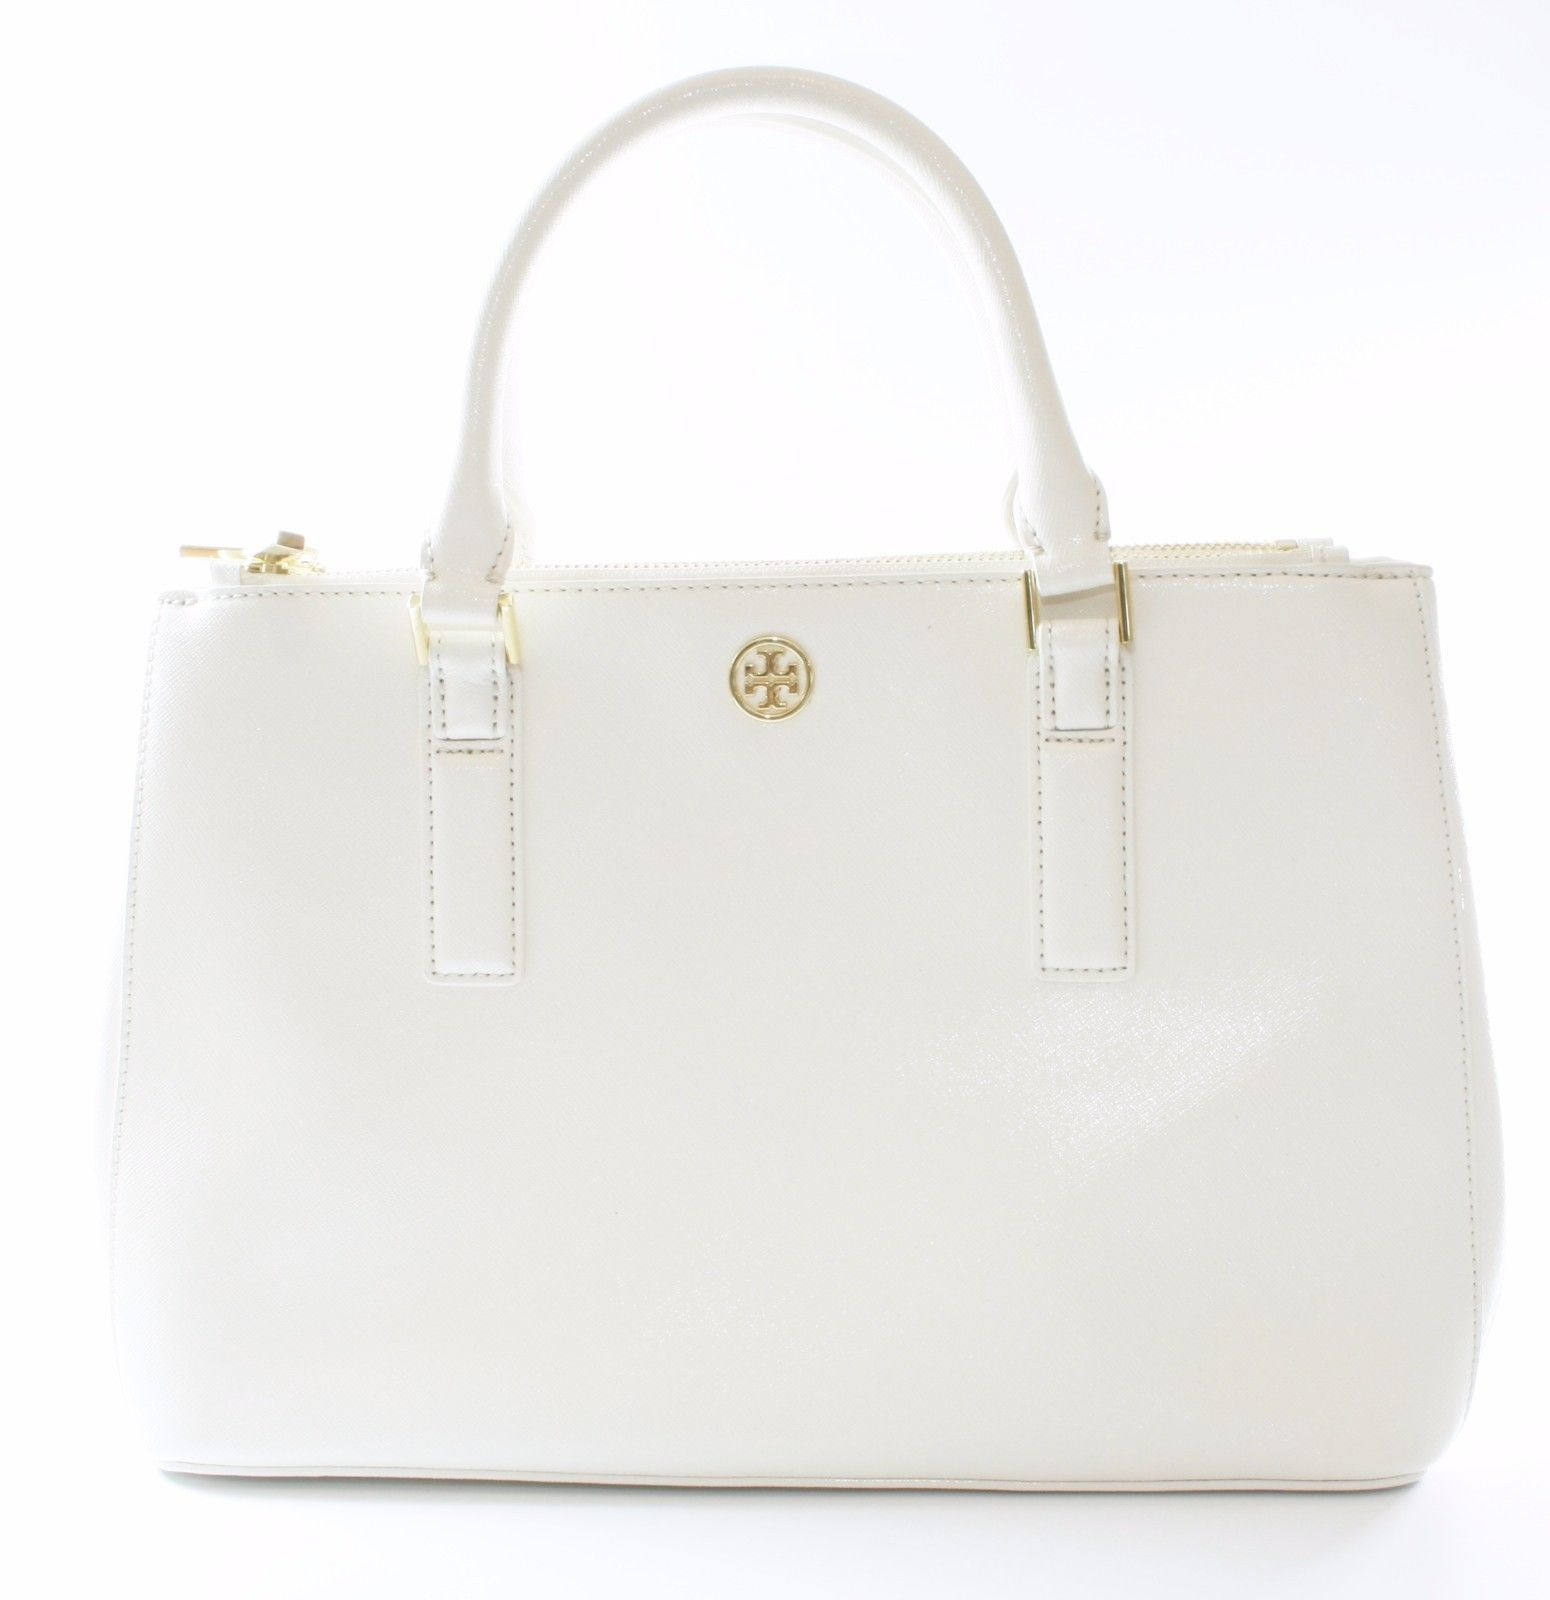 Primary image for Tory Burch Robinson Tote Bag Ivory Cream Saffiano Leather Medium Handbag